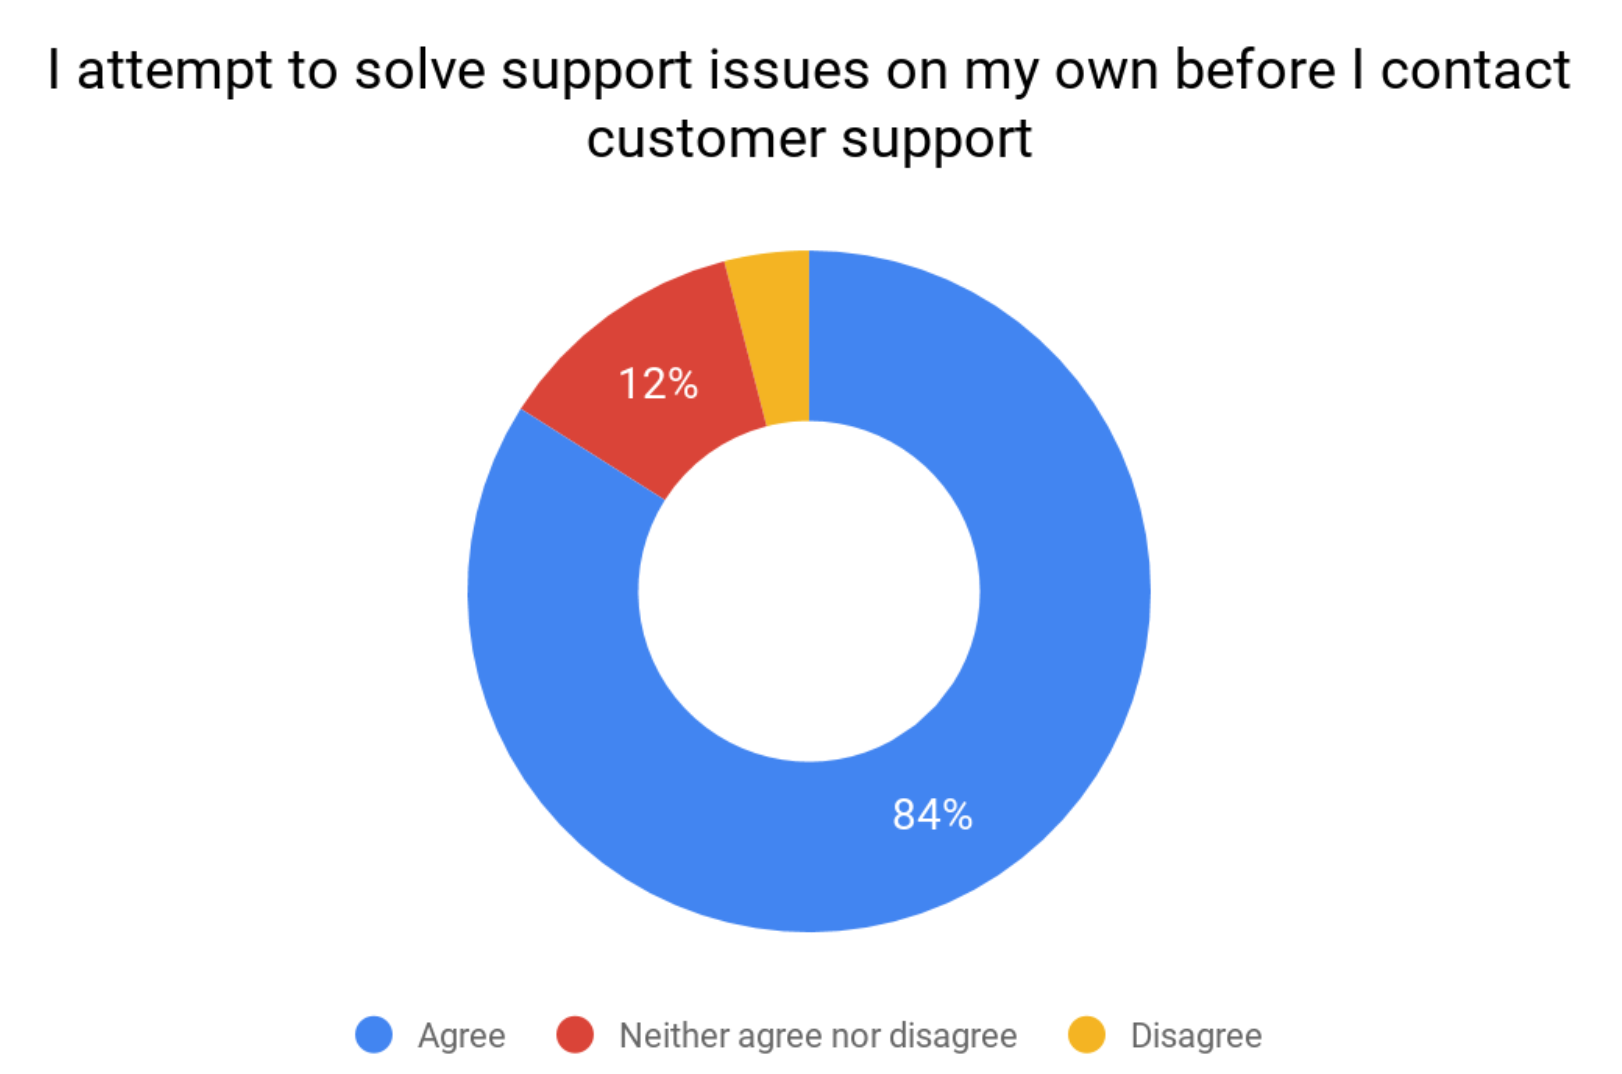 84% of customers attempt to solve their issues first